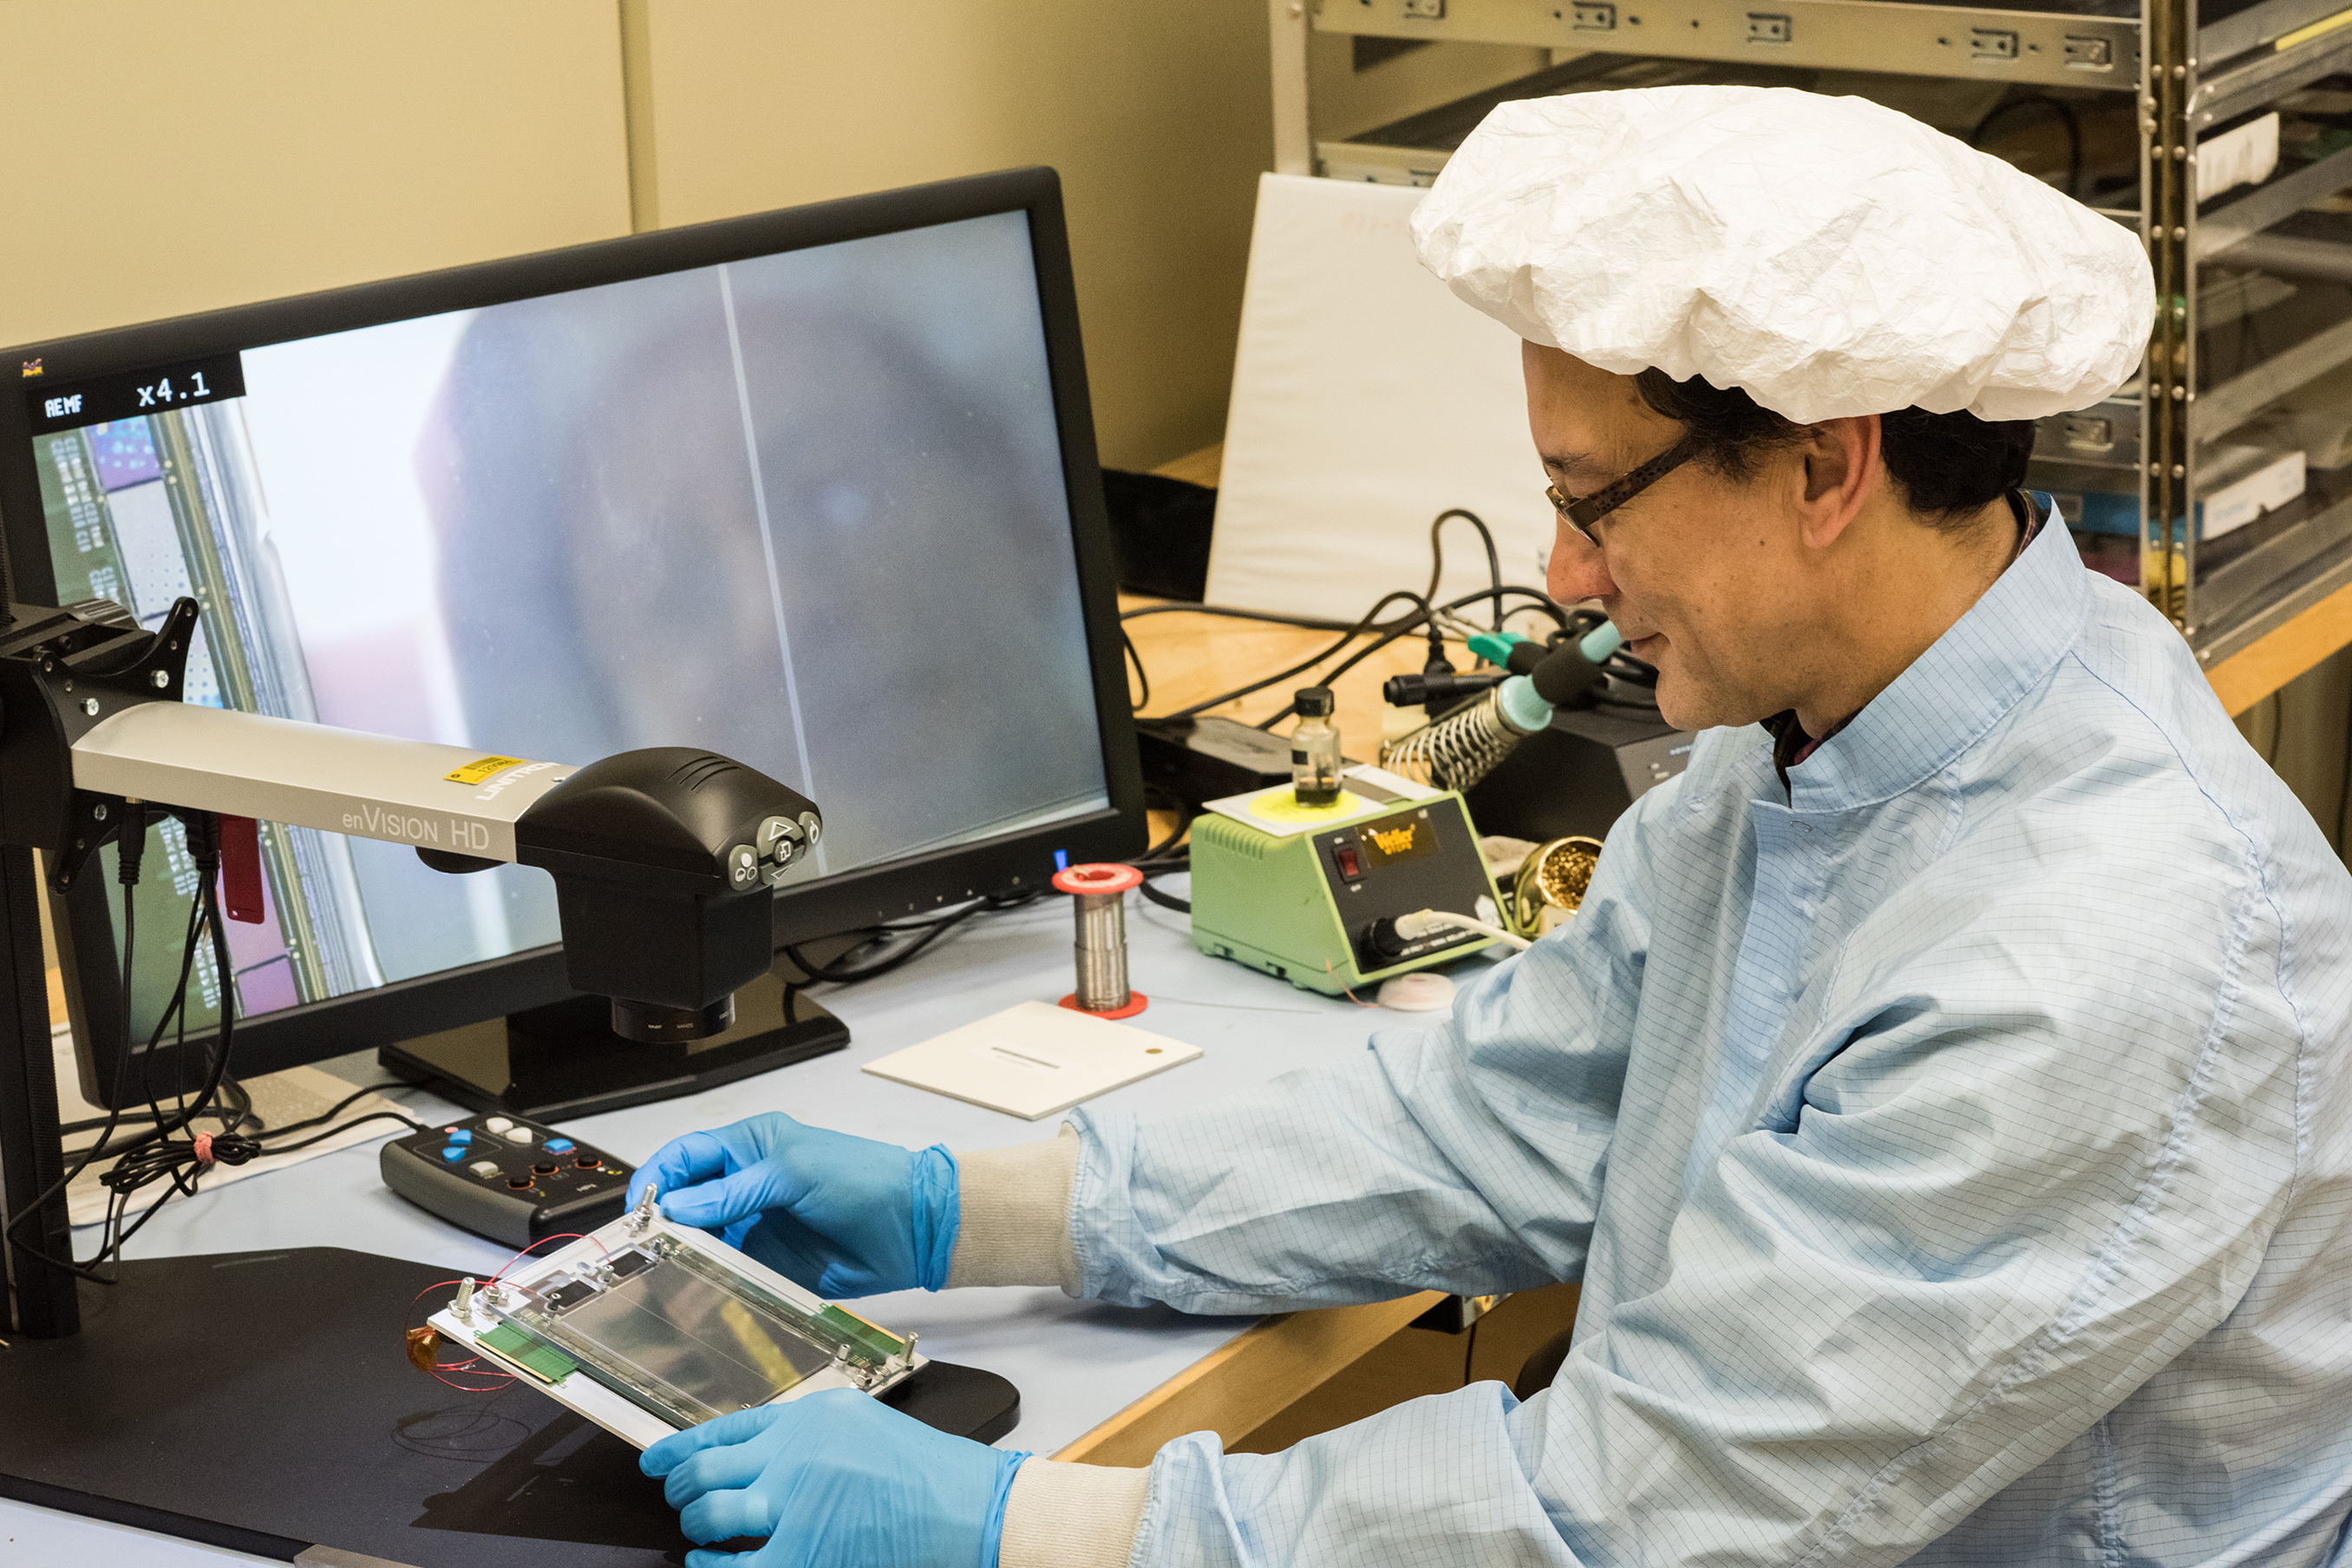 Burt Gonzalez of the Particle Physics Division Detector Development and Operations Department inspects the encapsulation of microbonds for the first 2S electrical high-density interconnect readout design of the CMS outer tracker upgrade. Photo: Leticia Shaddix